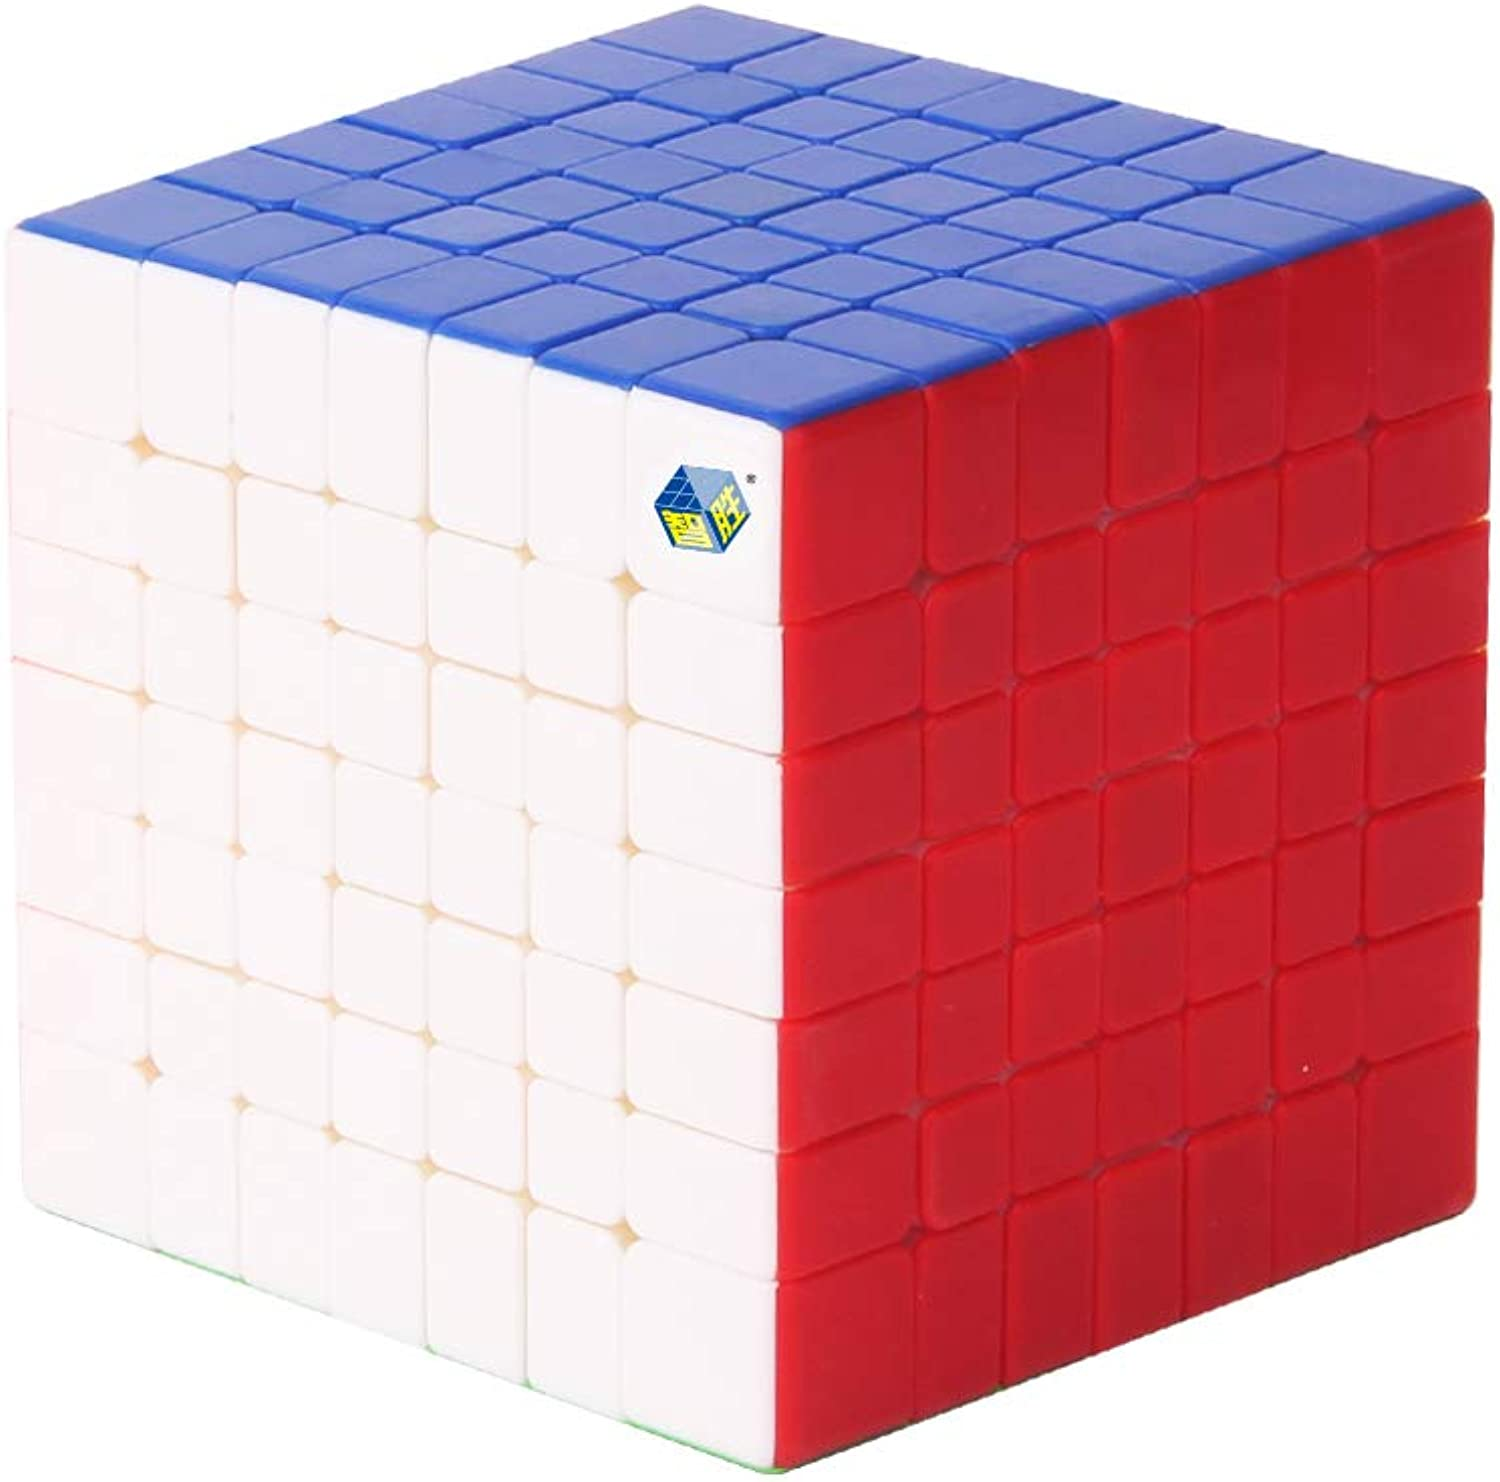 GYFY Competition speed seventhorder cube professional classic puzzle twisted toy threedimensional puzzle (six colors)